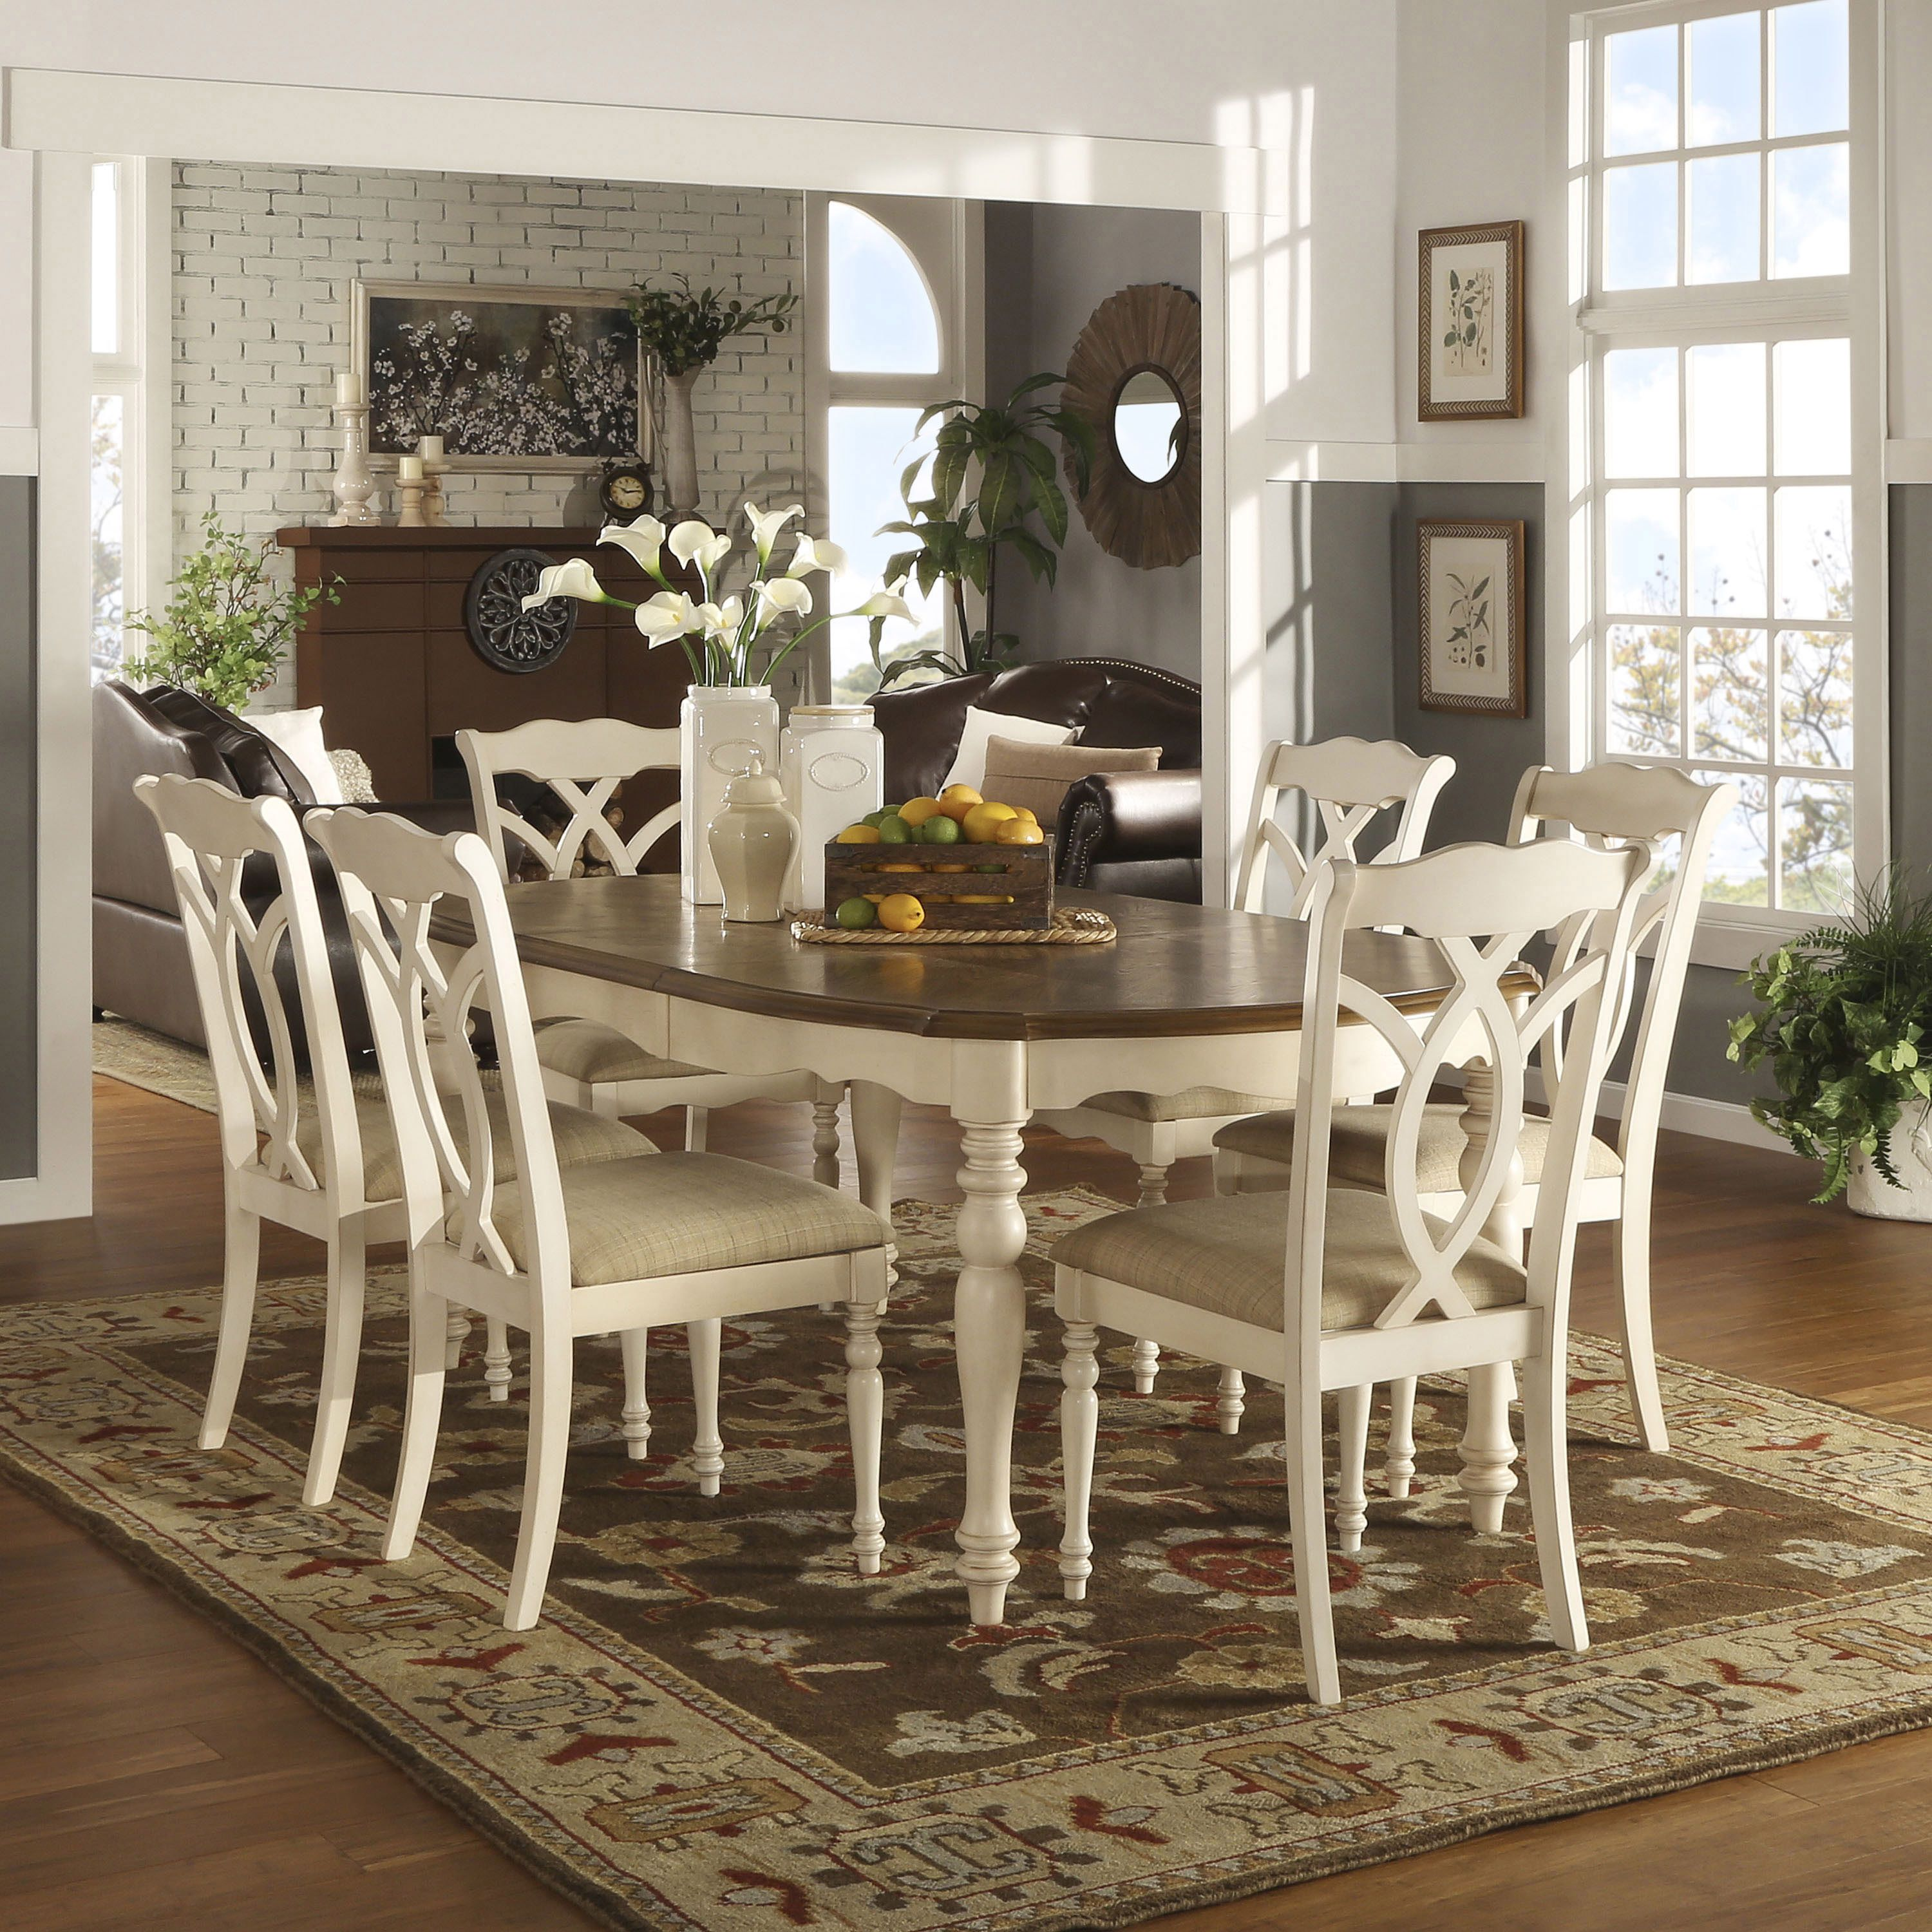 Comfortable Yet Classic This Collection Features A Spacious Table